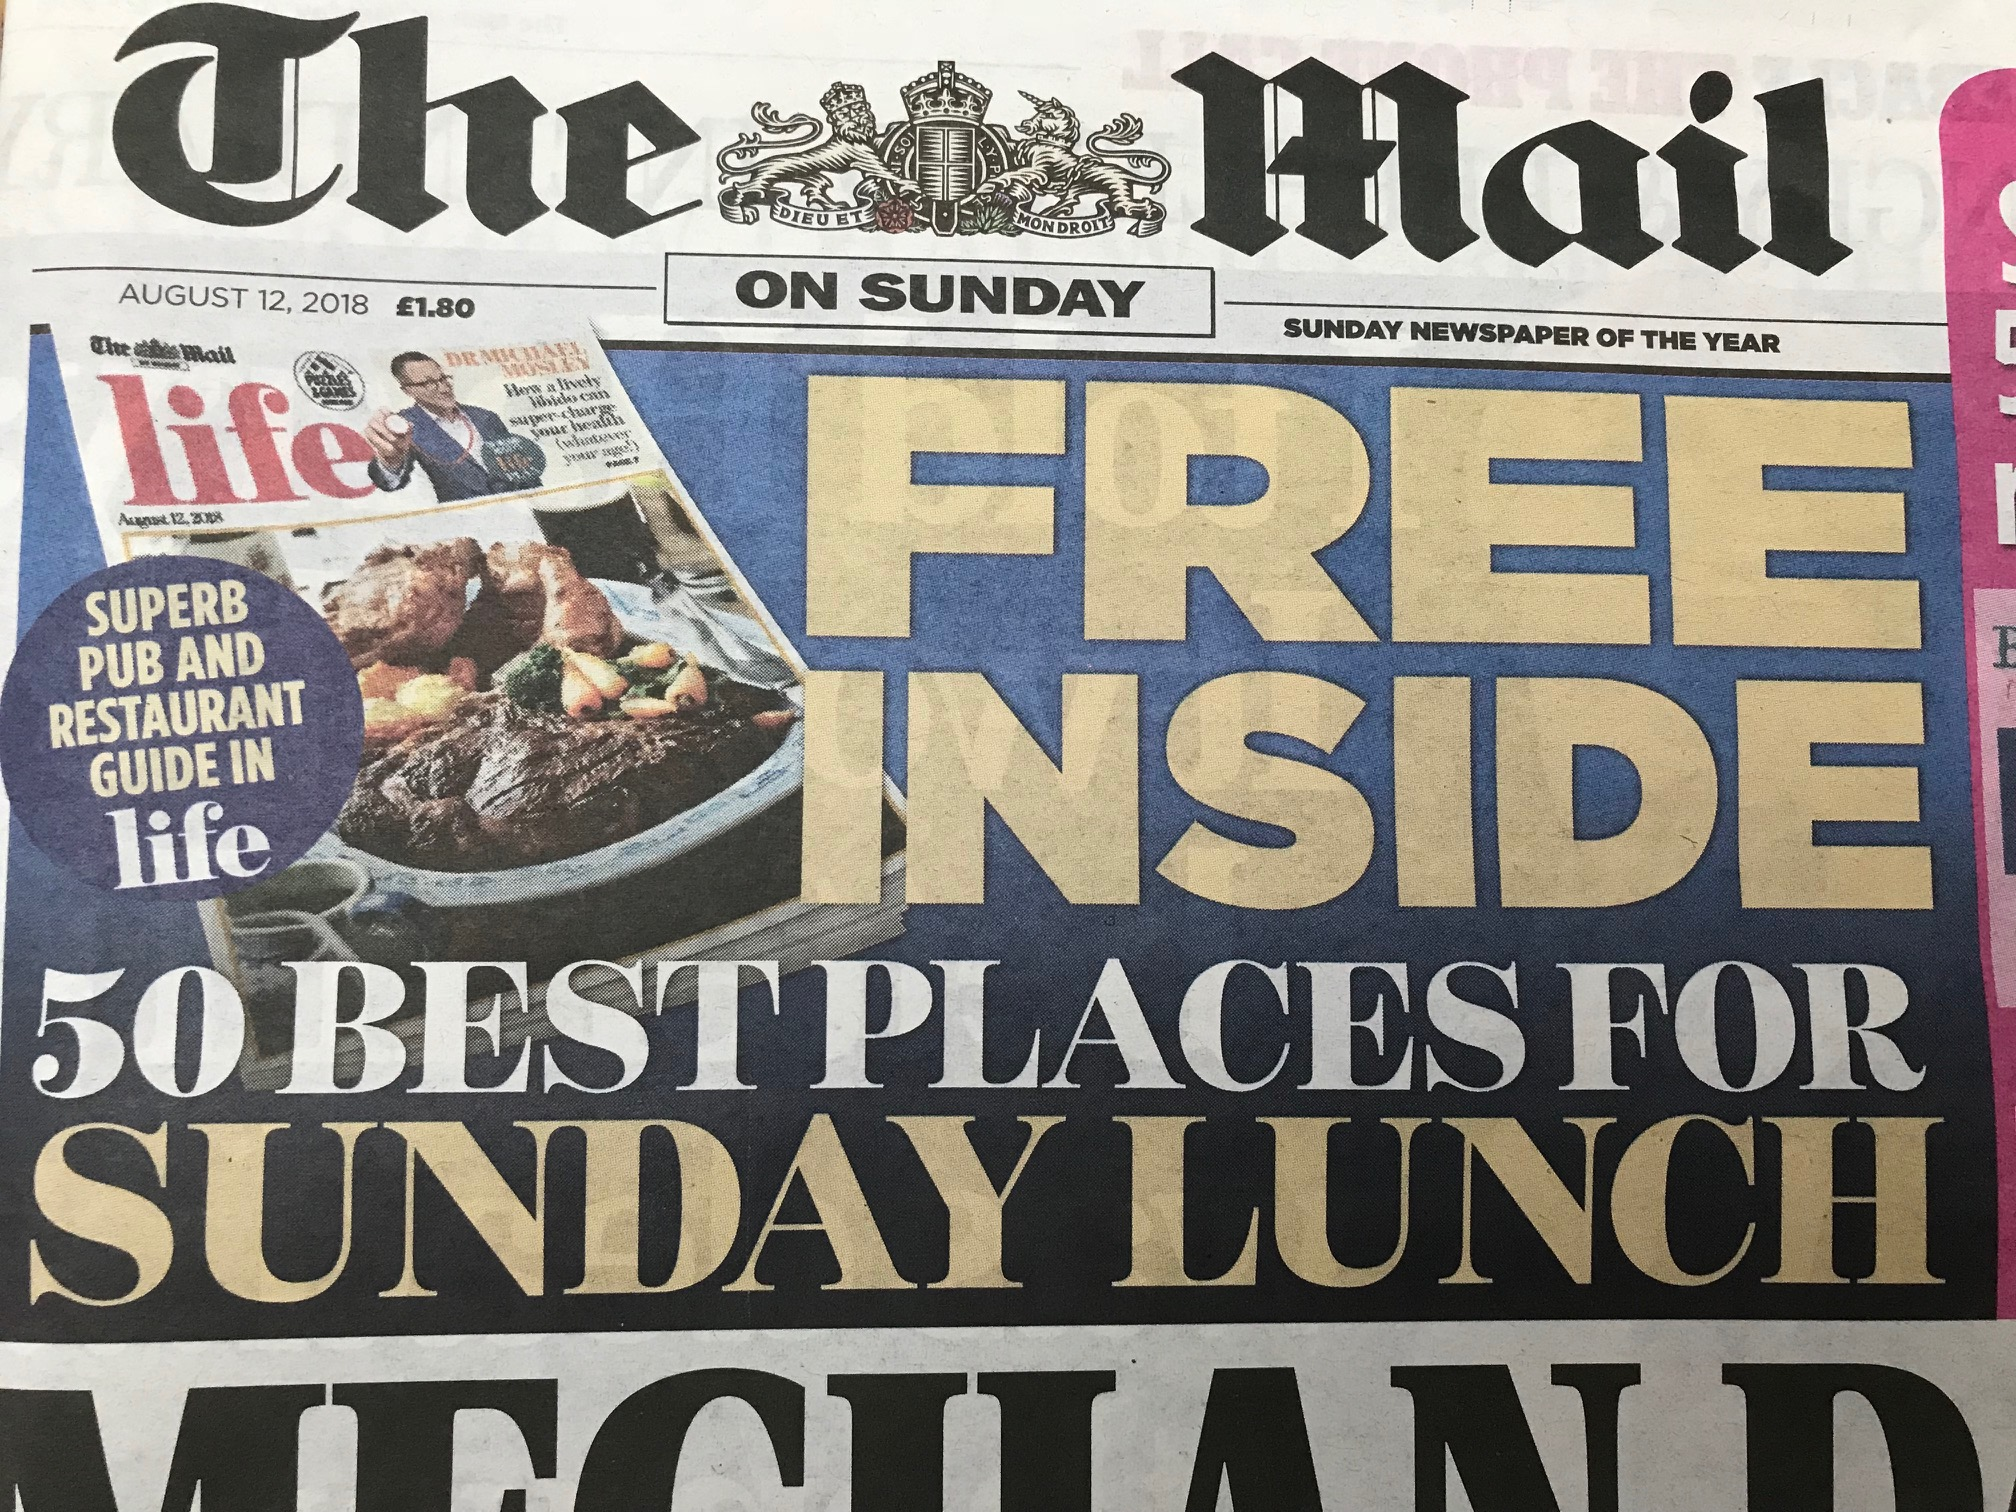 Featured as one of the top 50 best places for Sunday Lunch in the UK in the  Mail on Sunday  August 2018.